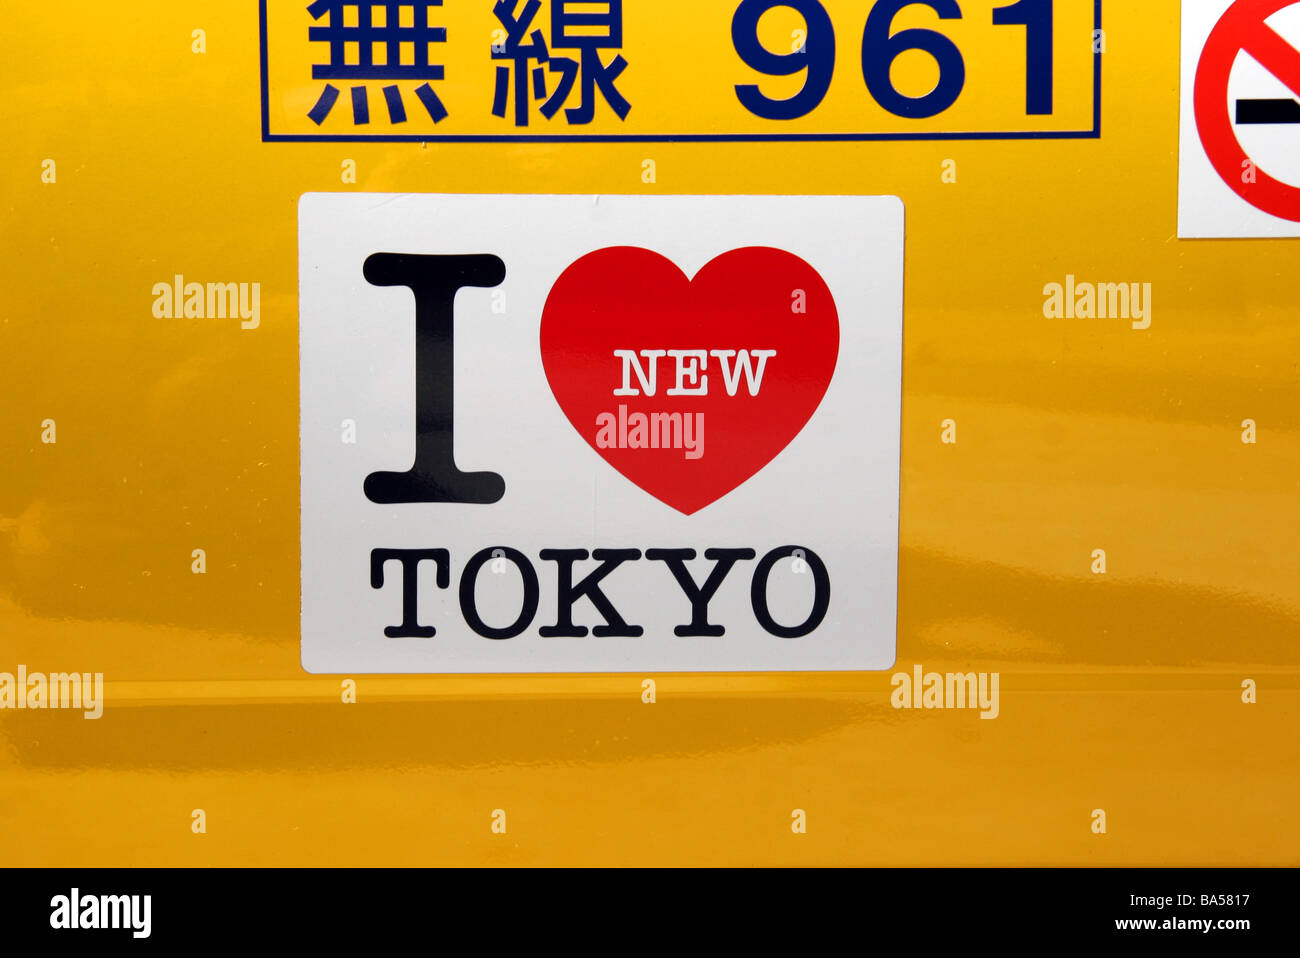 I Love Tokyo sticker on door of yellow taxi cab in Tokyo Japan - Stock Image